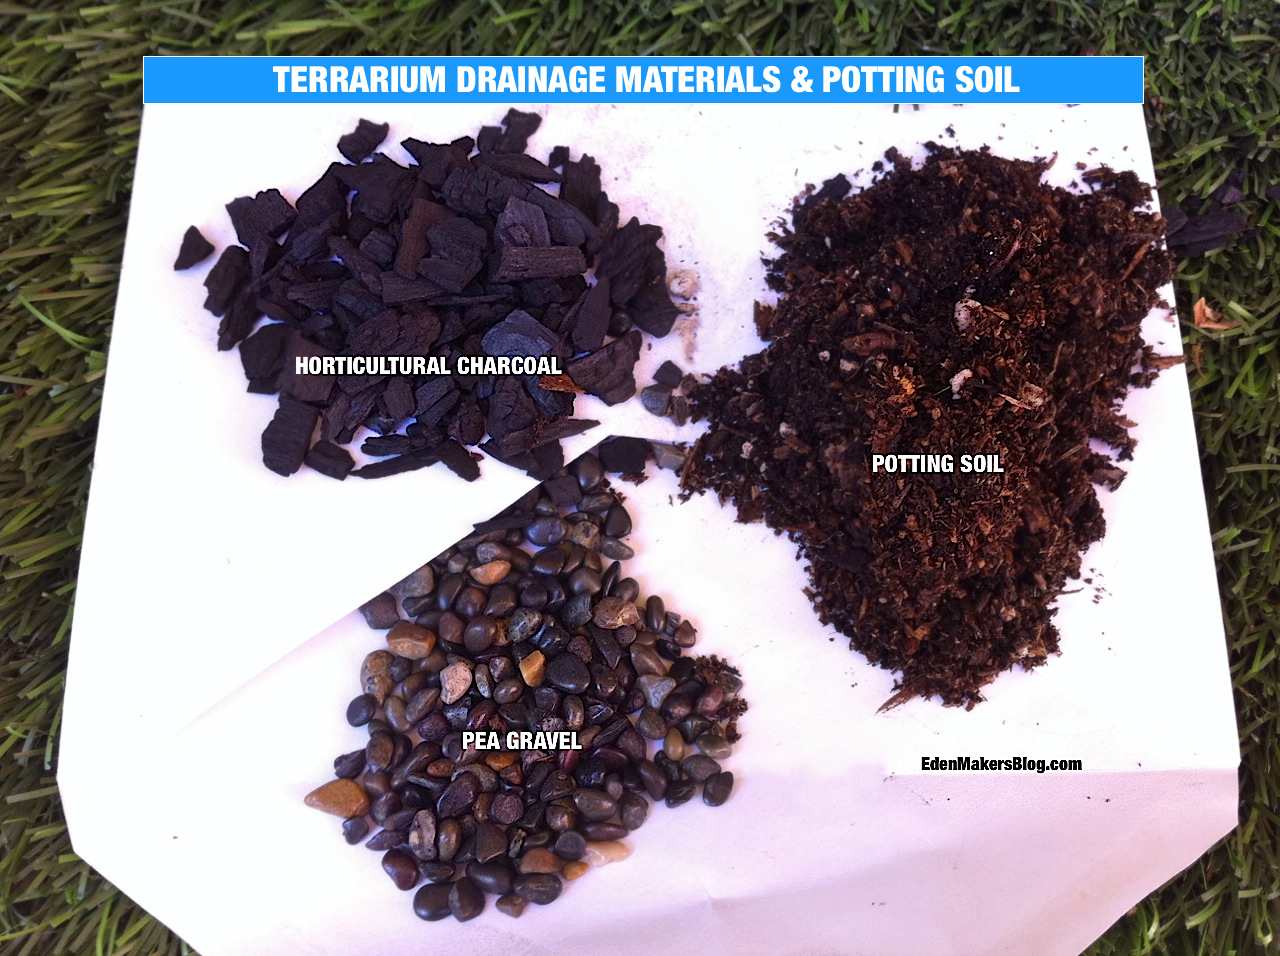 Drainage materials for terrarium include horticultural charcoal and pea gravel. Add potting spoil on top of drainage layer